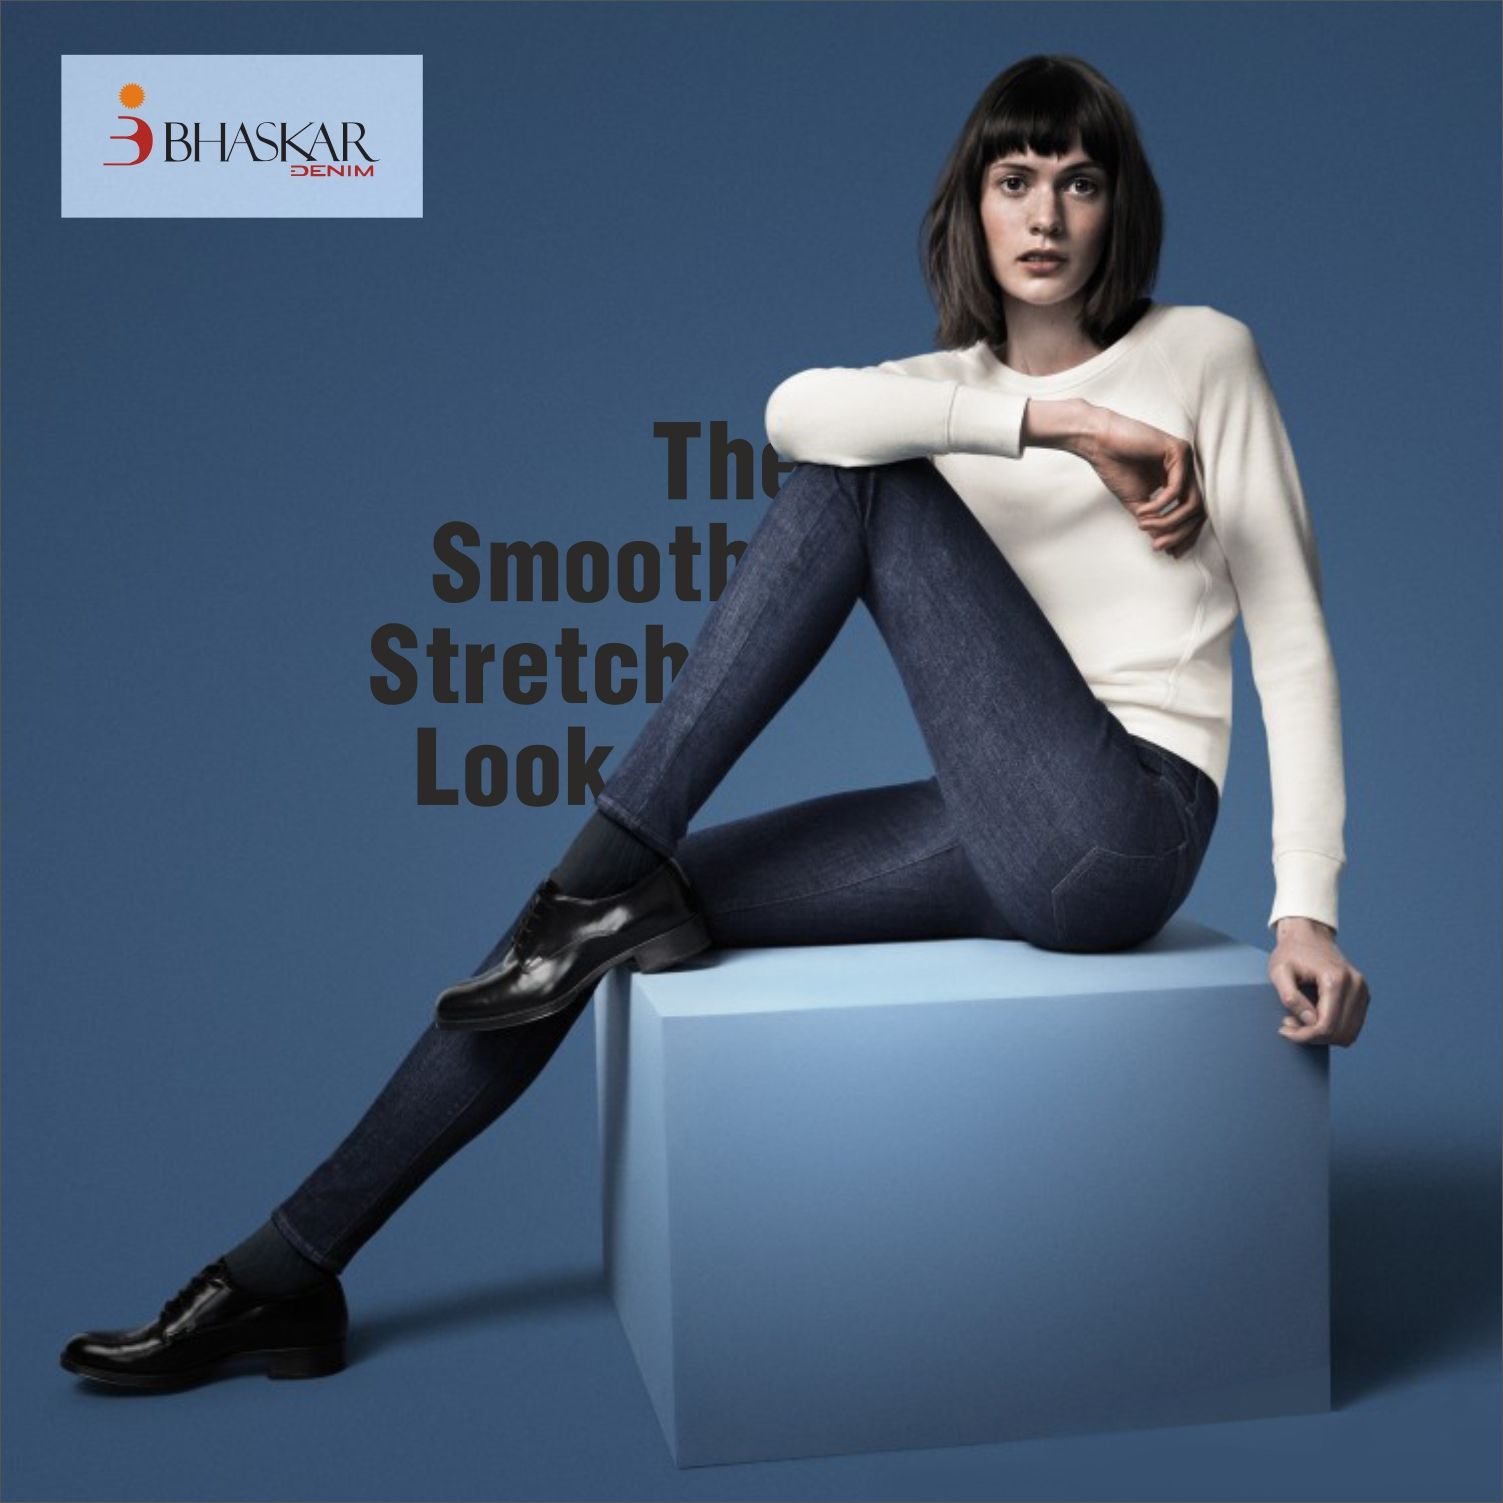 Fabrics that Stretch out comfortably and flawlessly! #StretchDenims #StretchFabrics #DenimFabrics